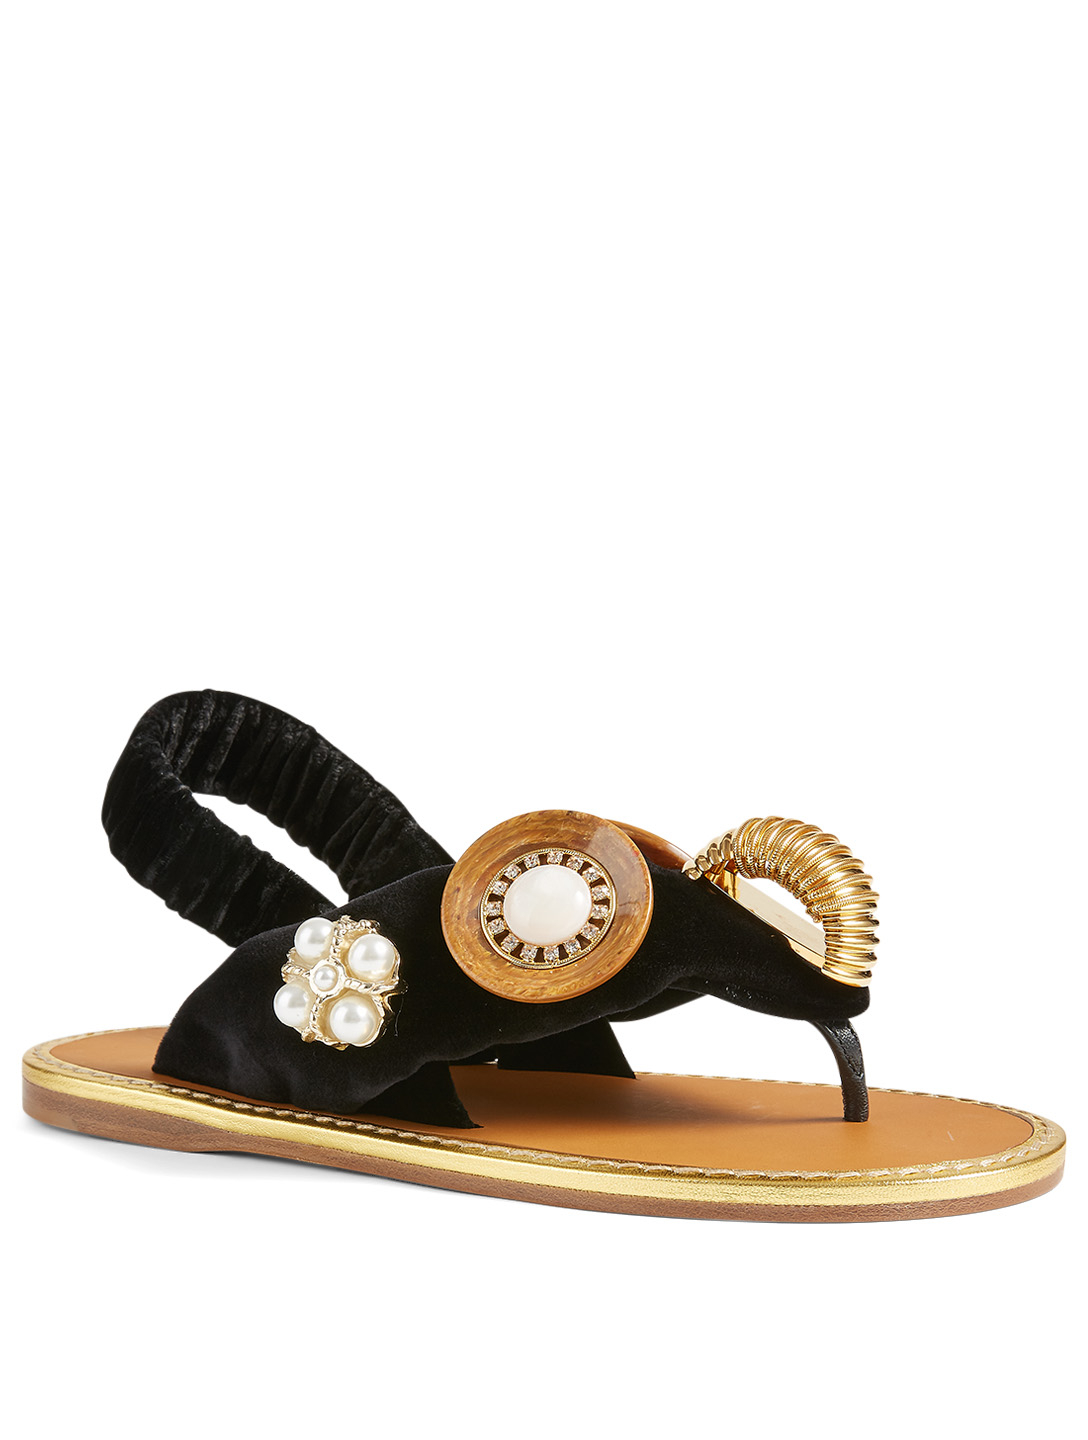 MIU MIU Velvet Thong Sandals With Buttons Women's Black